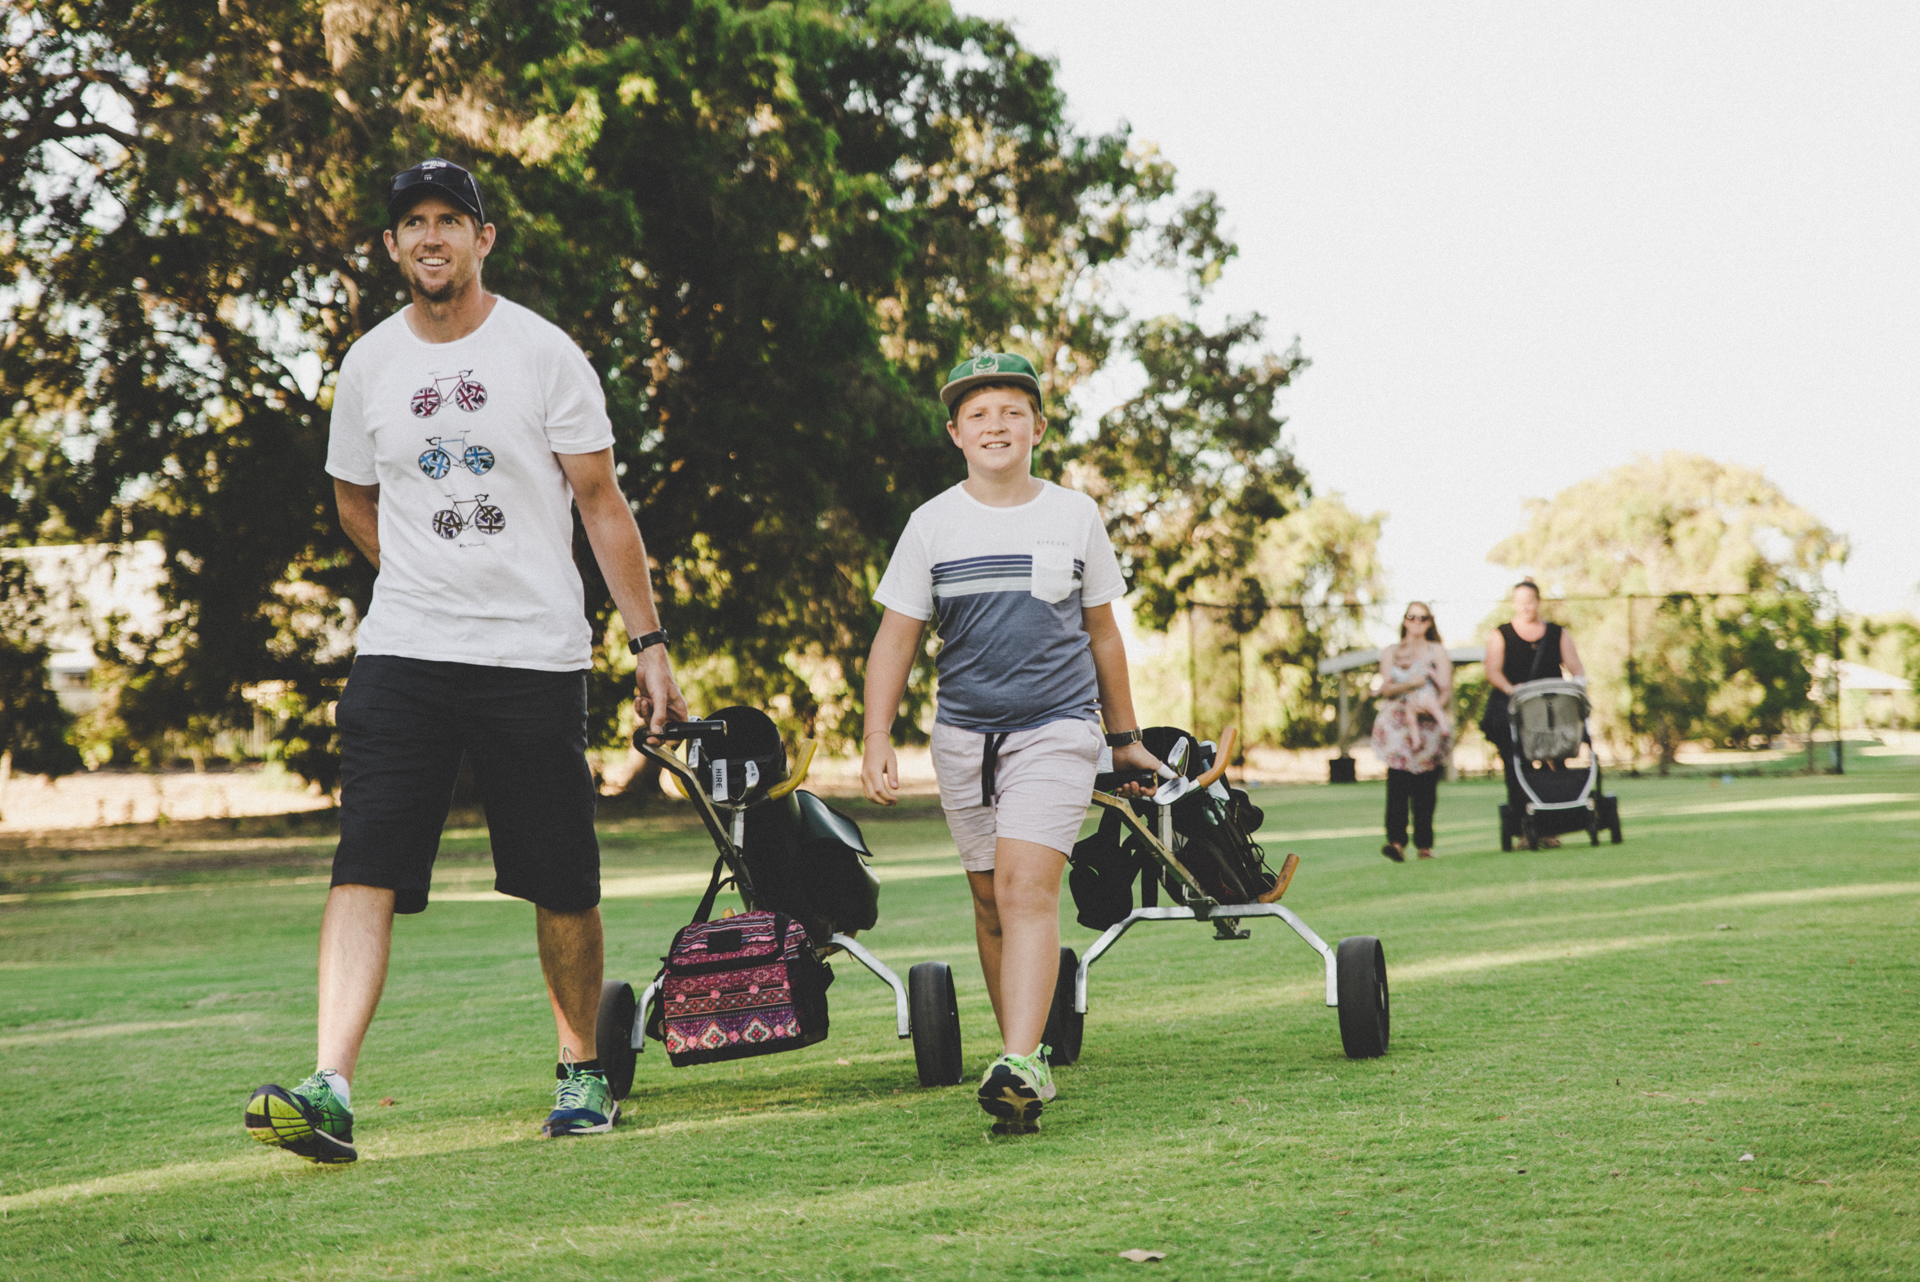 Putt Putt Busselton | The Par 3 at Old Broadwater Farm. Crazy Golf Busselton, Family Activities, Fun Activities, best Café with Coffee